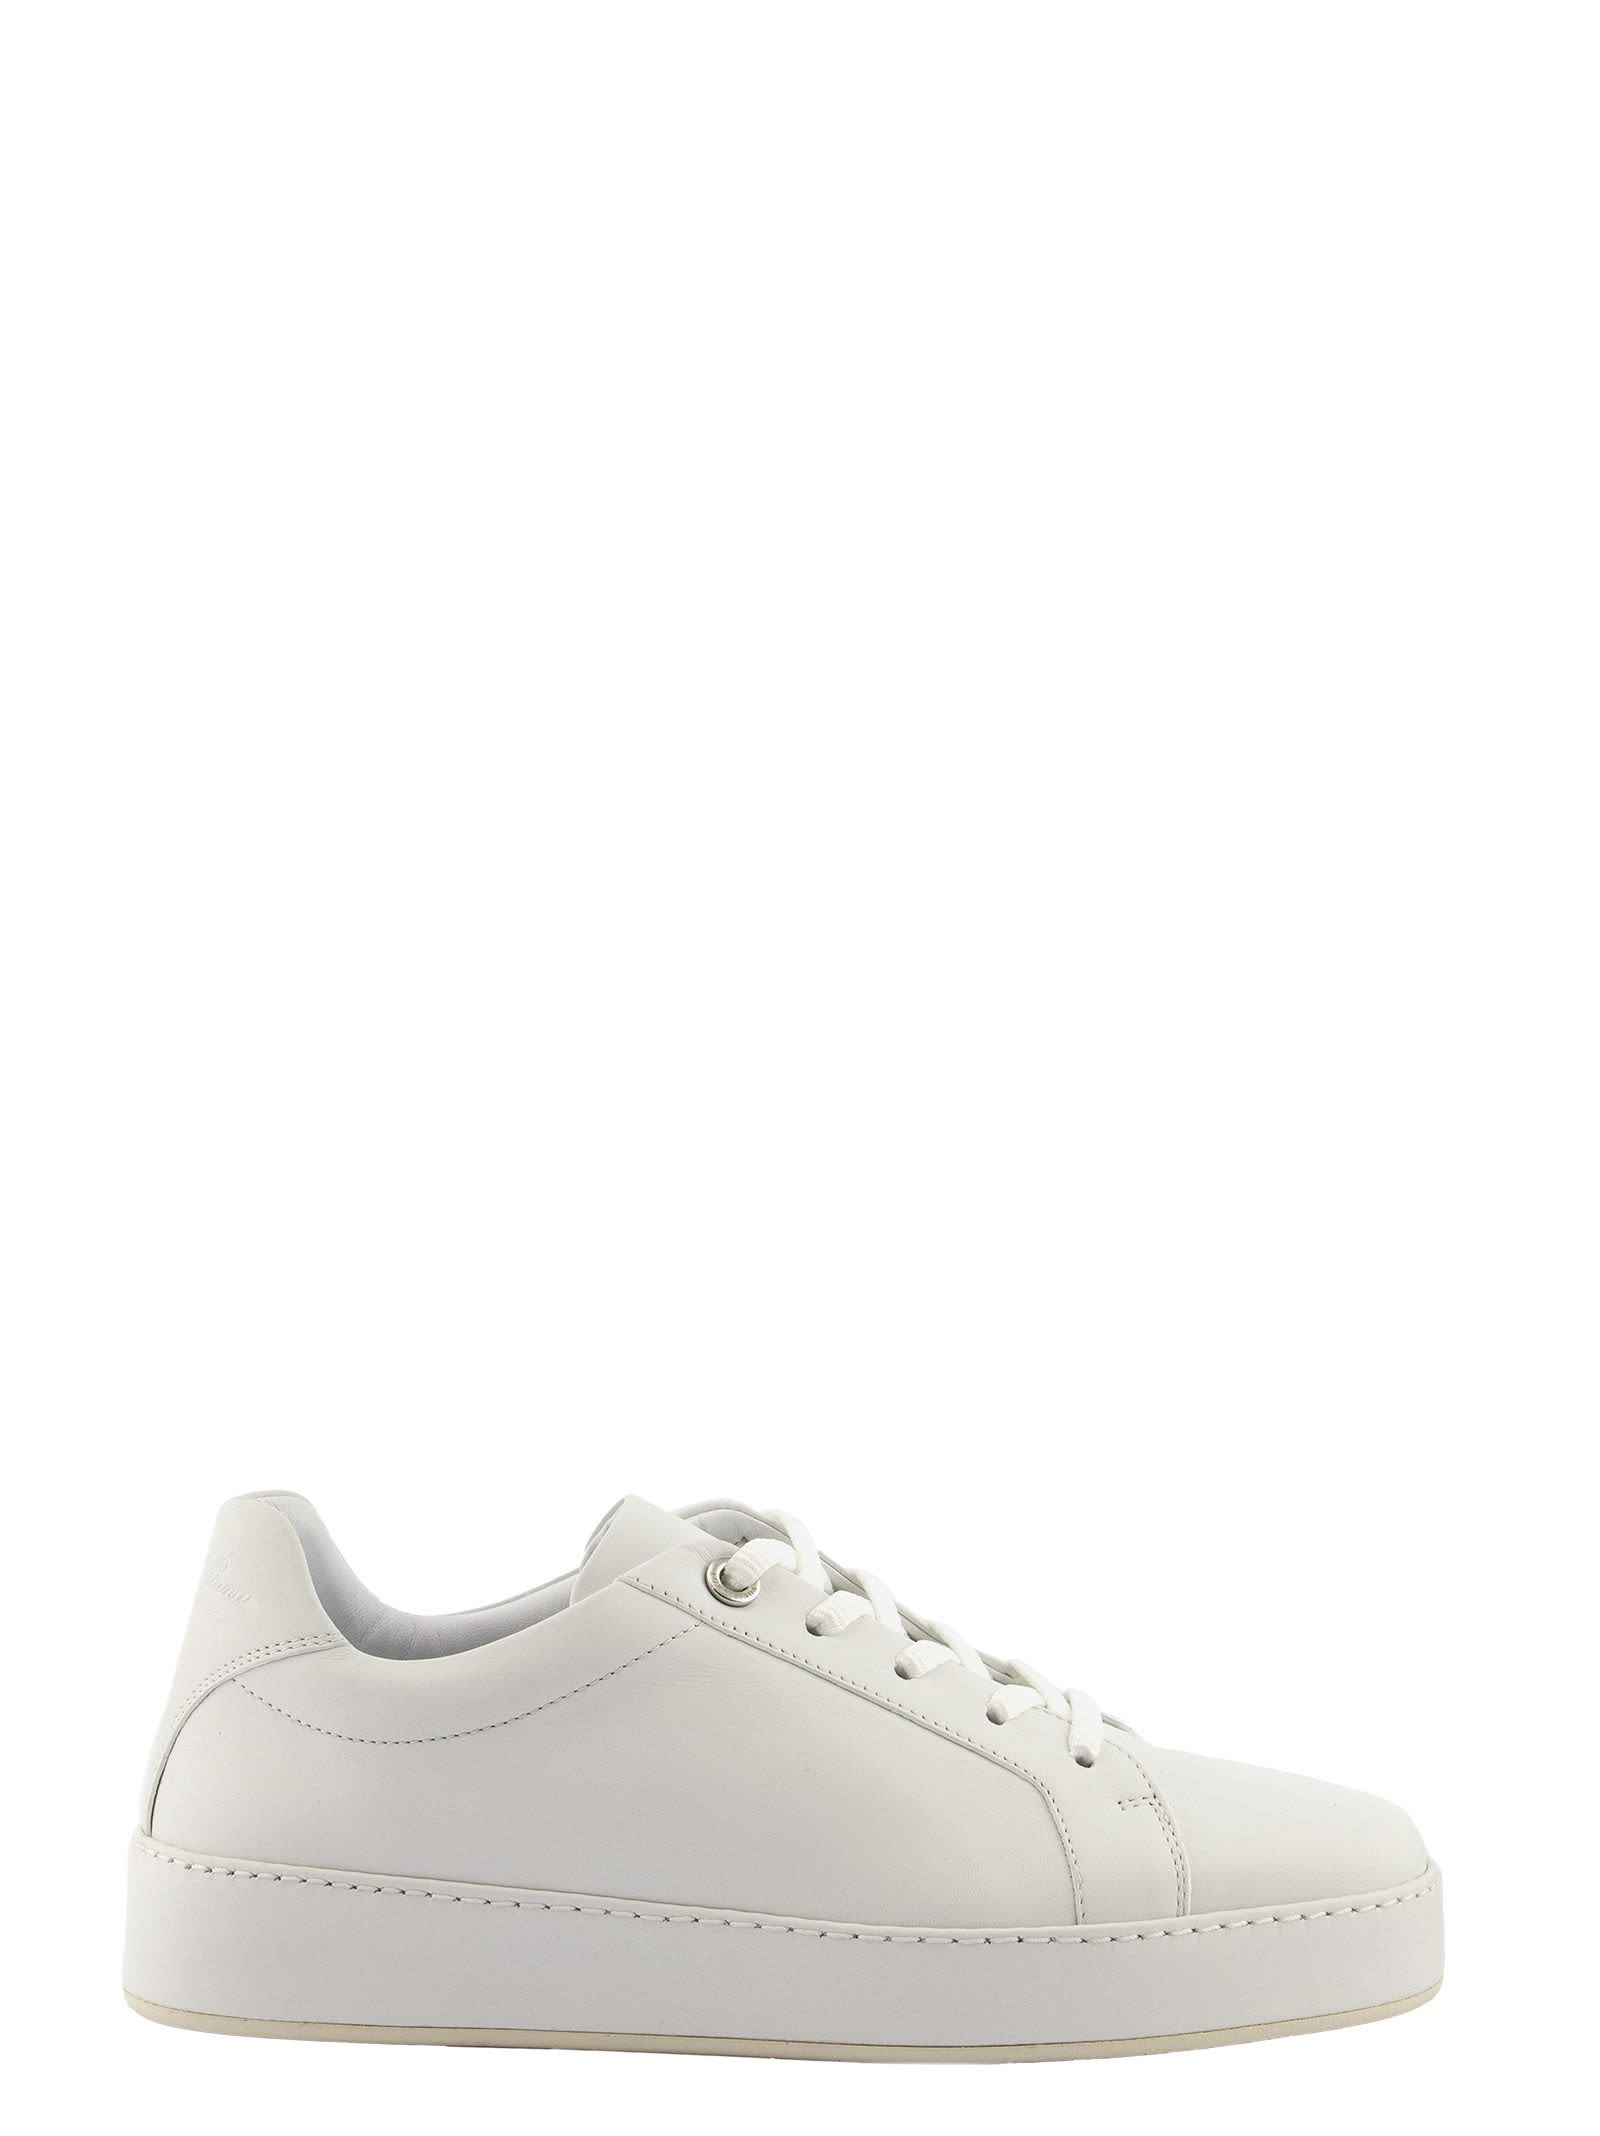 Loro Piana NUAGES DYED SNEAKERS CALF WHITE